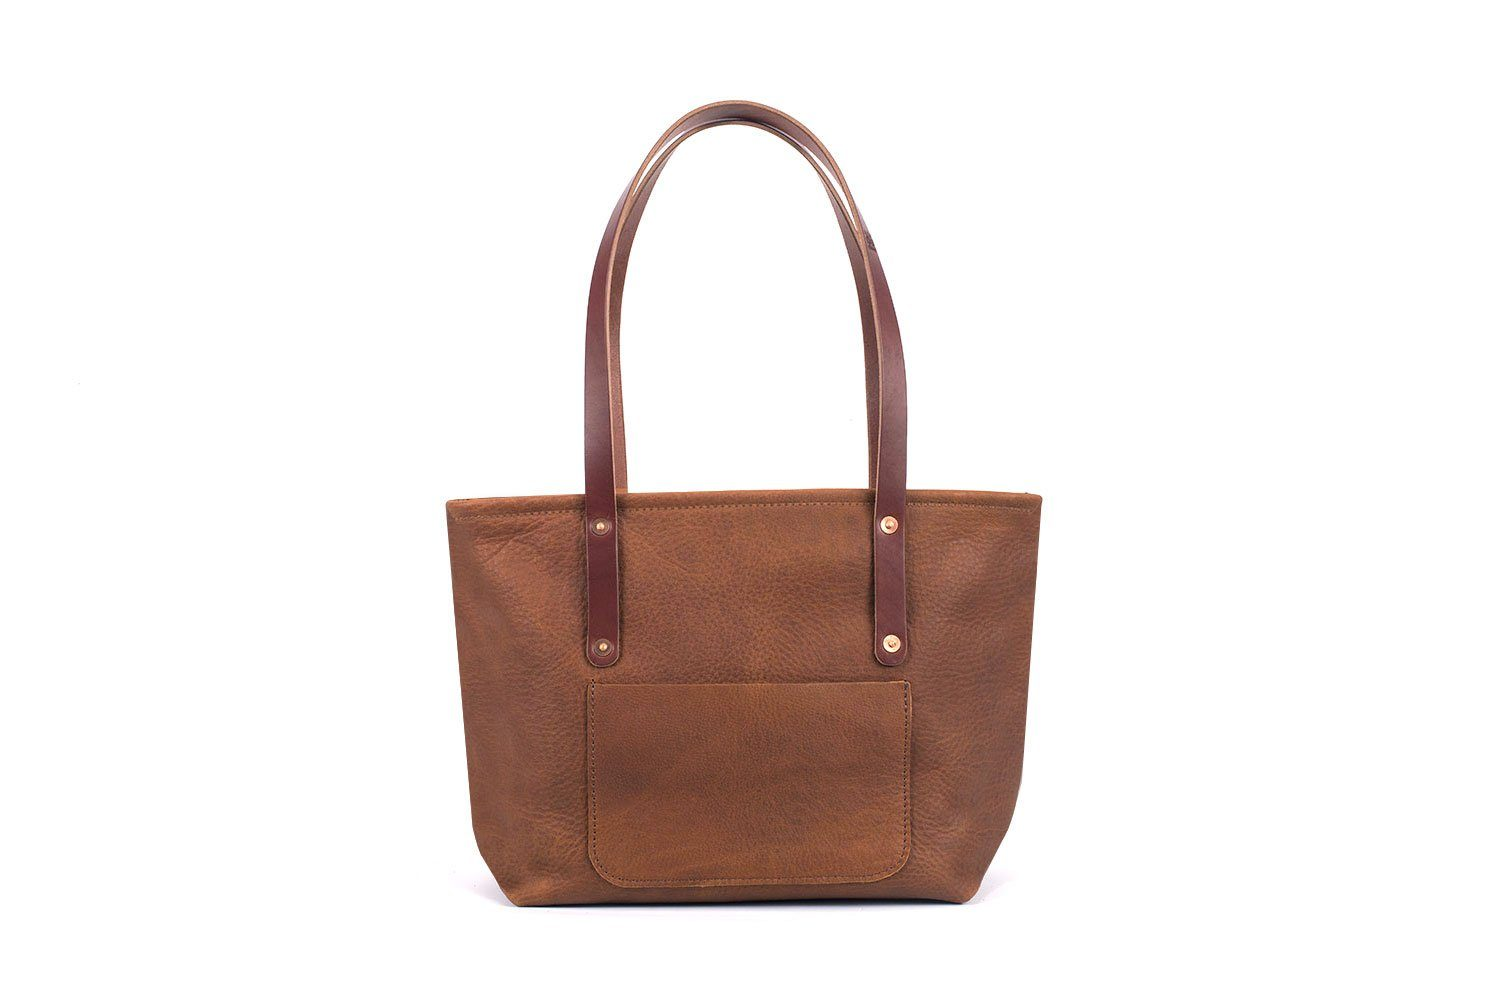 AVERY LEATHER TOTE BAG WITH ZIPPER - MEDIUM DELUXE